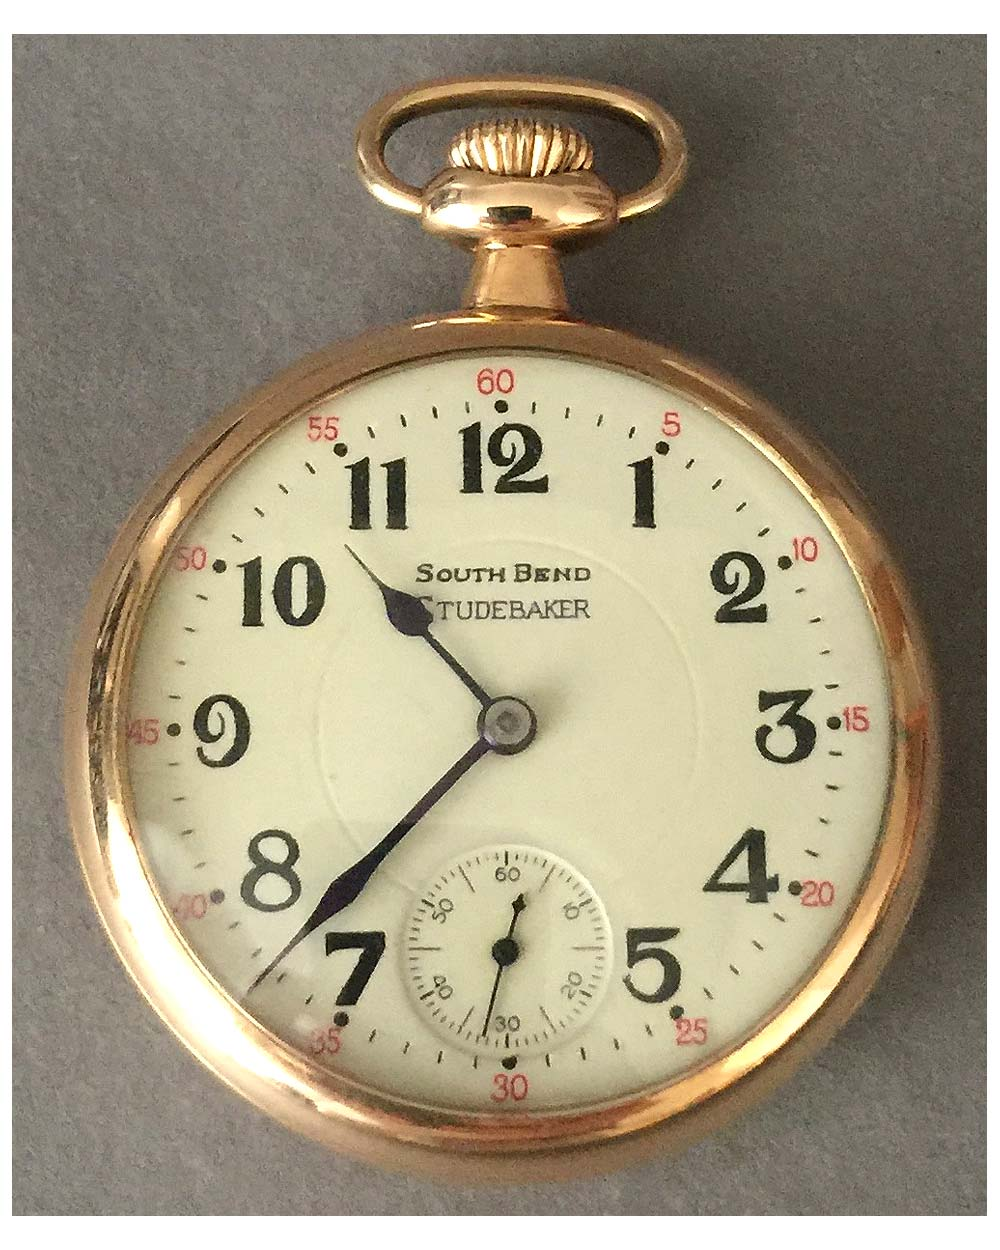 "Studebaker pocket watch By South Bend<br><span style=""color: #ff0000;"">$990 -25% = $743</span>"